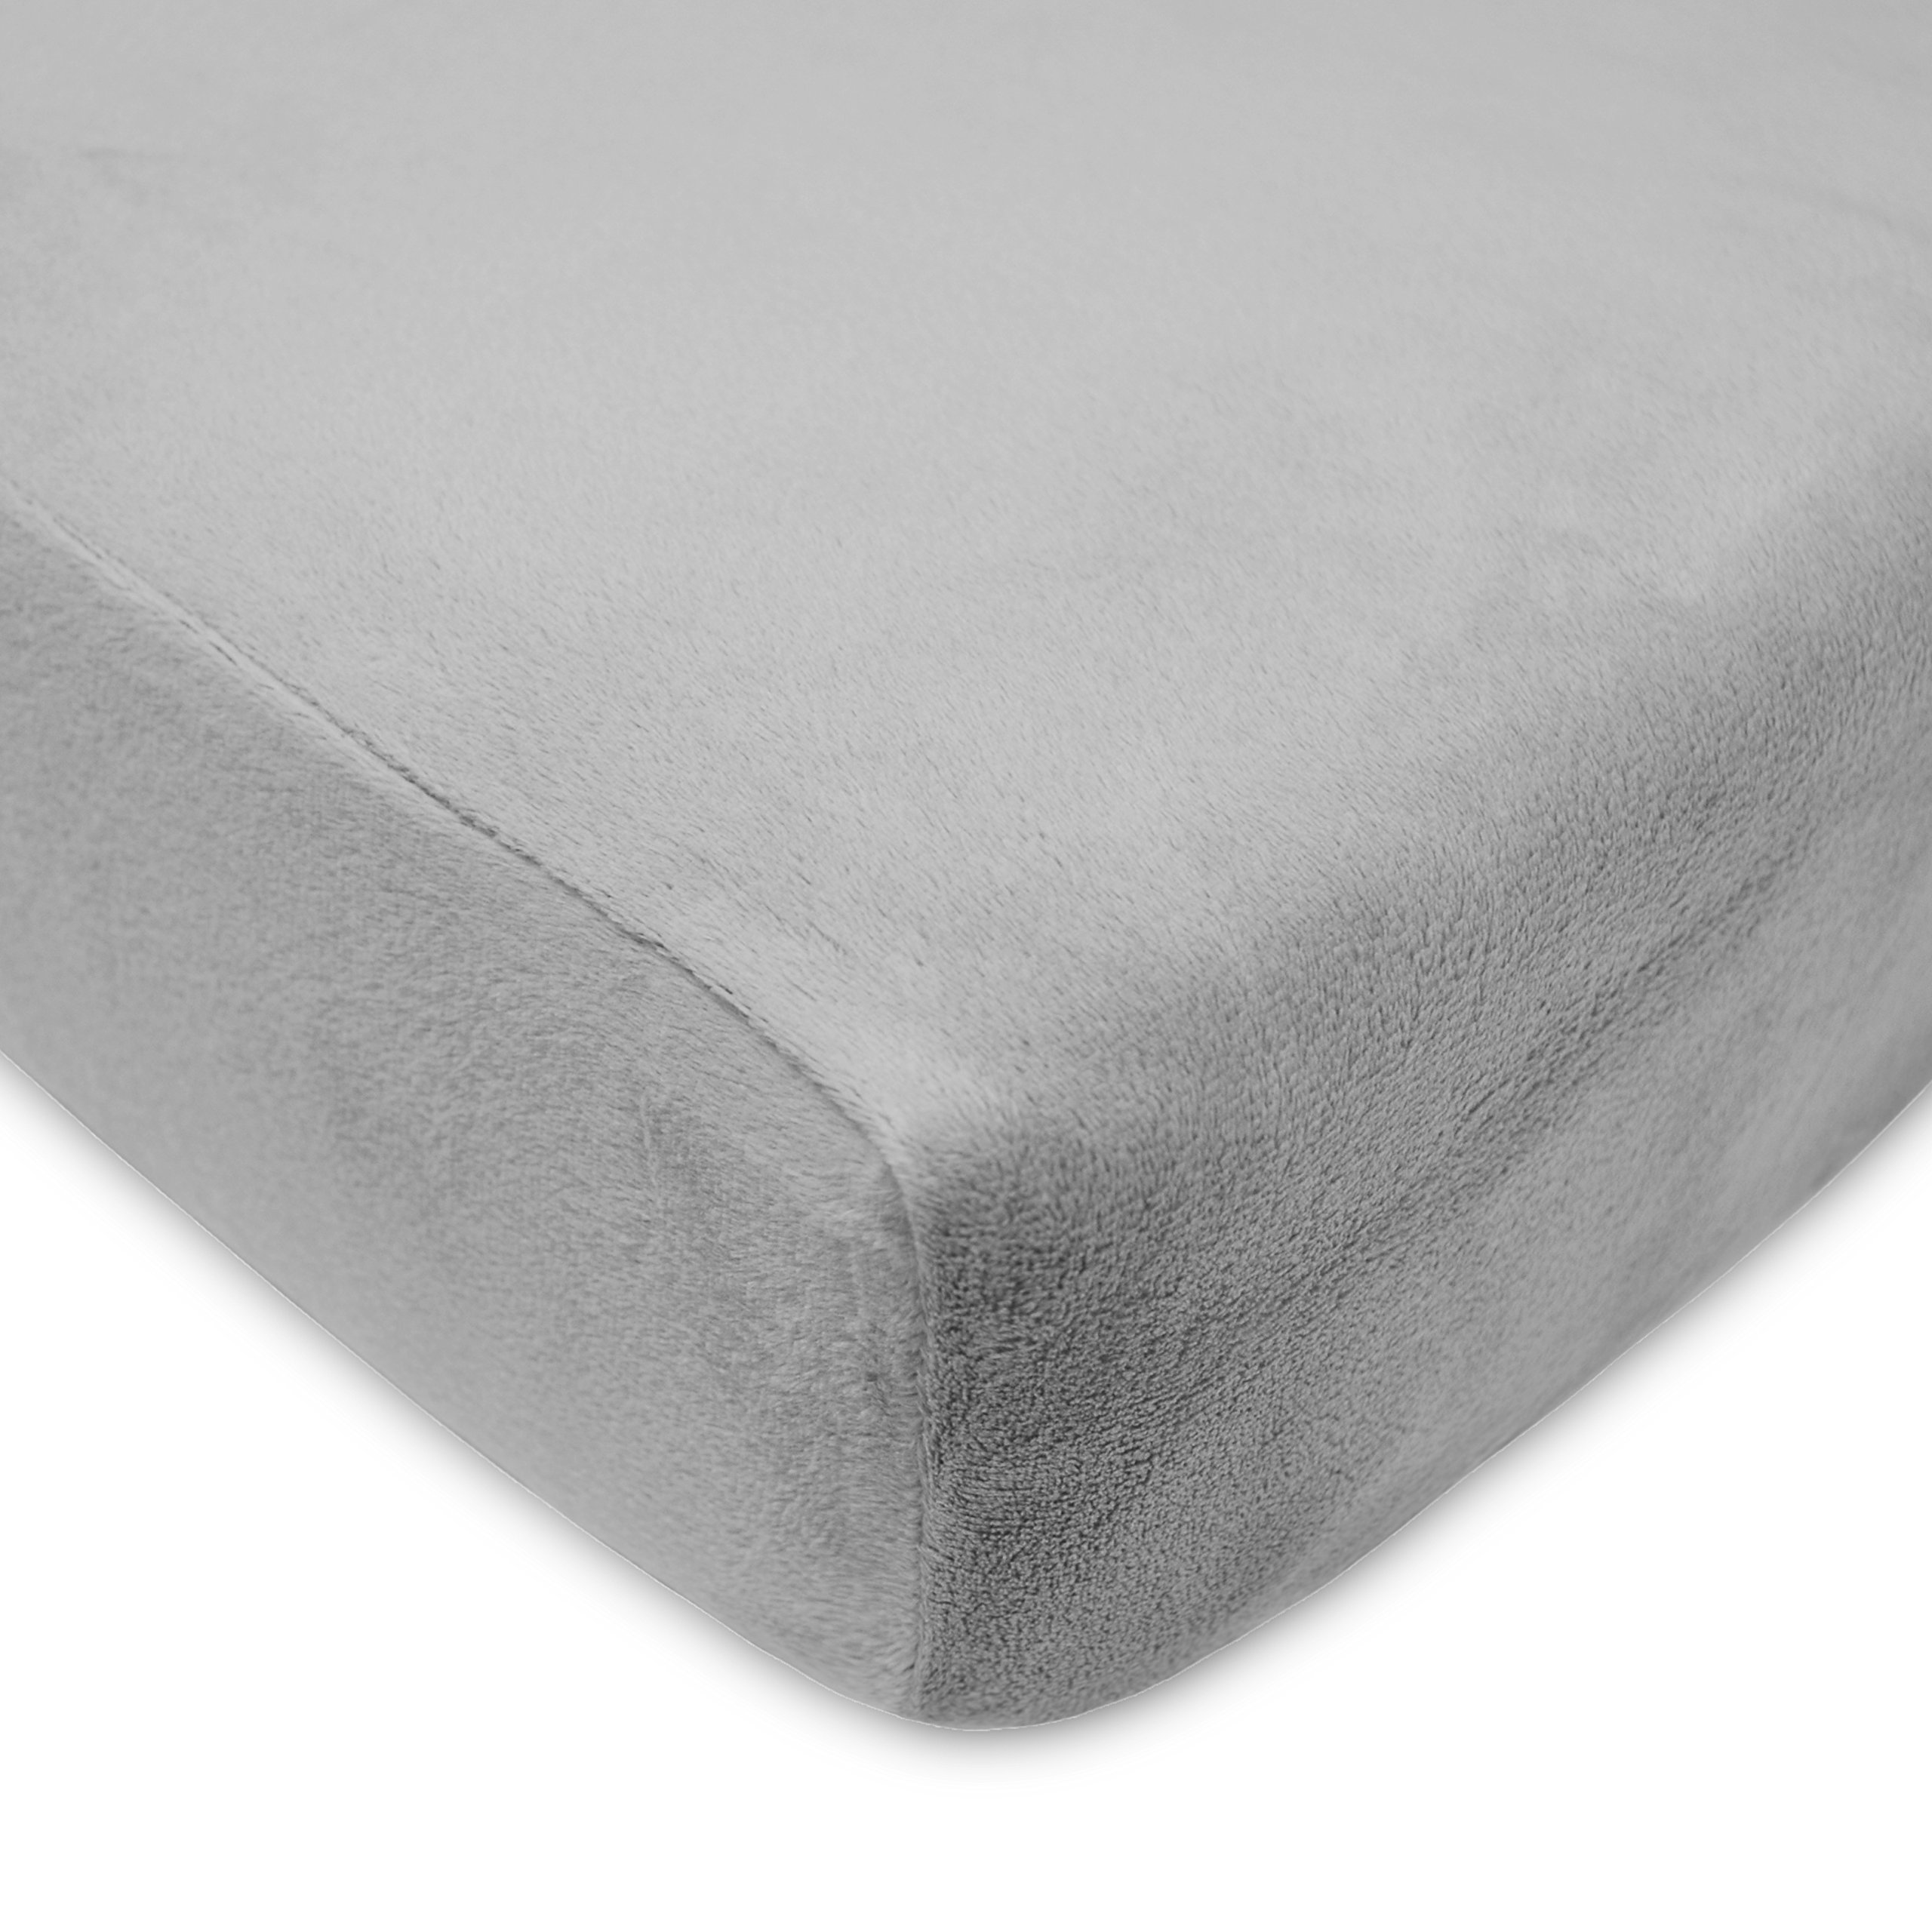 reviewstop image pillowattress pillowtop mattress toppers rated full mattresses top astounding best padstopattresses of pillow coversattressestop design size